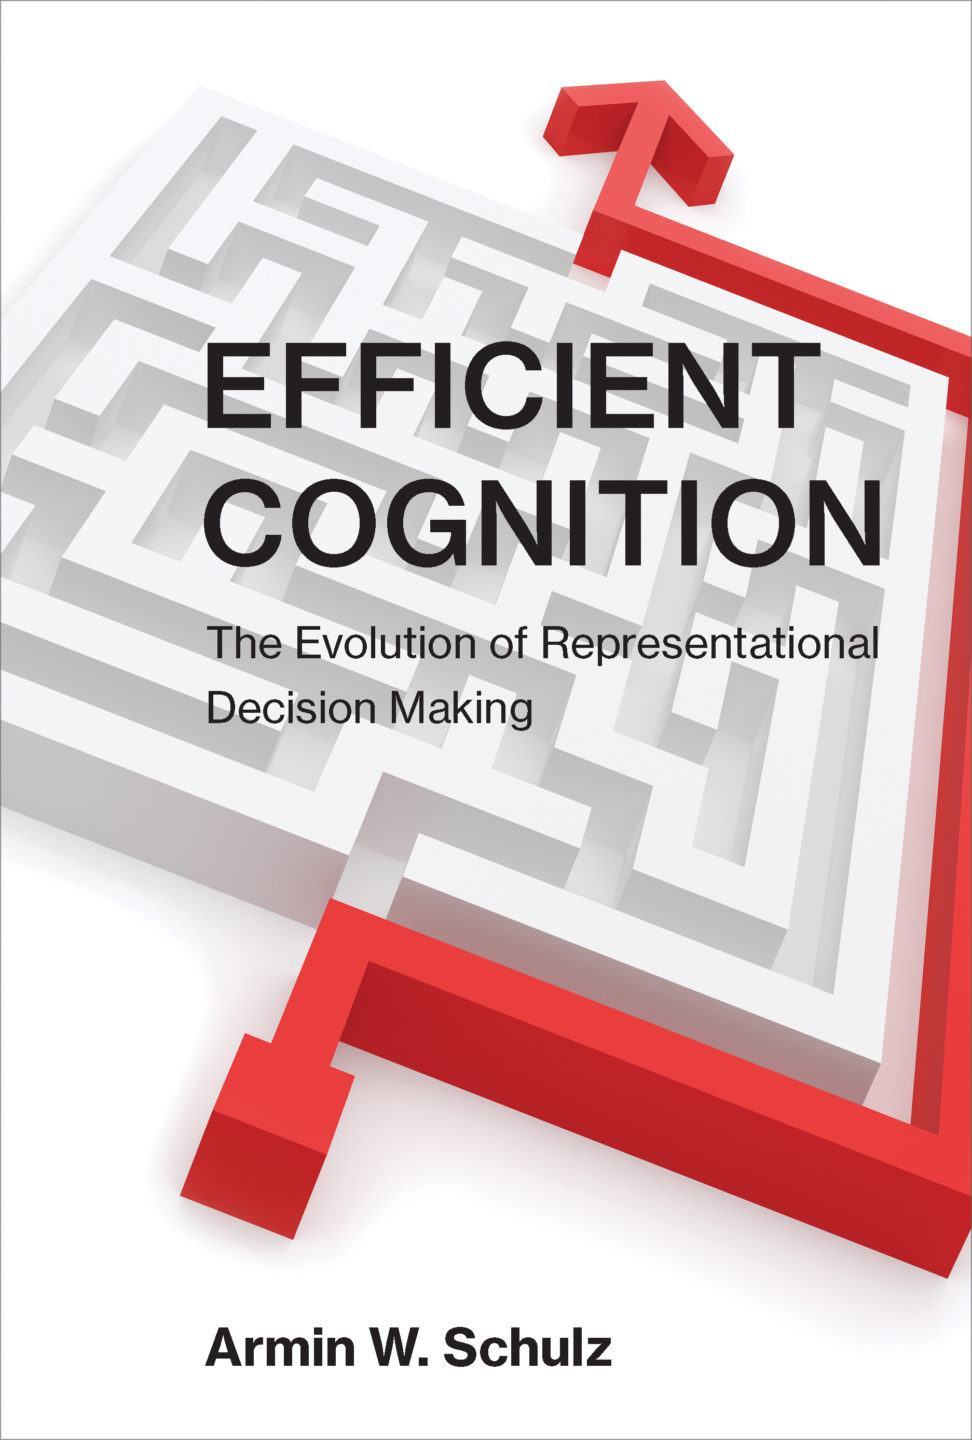 Efficient Cognition—The Evolution of Representational Decision Making